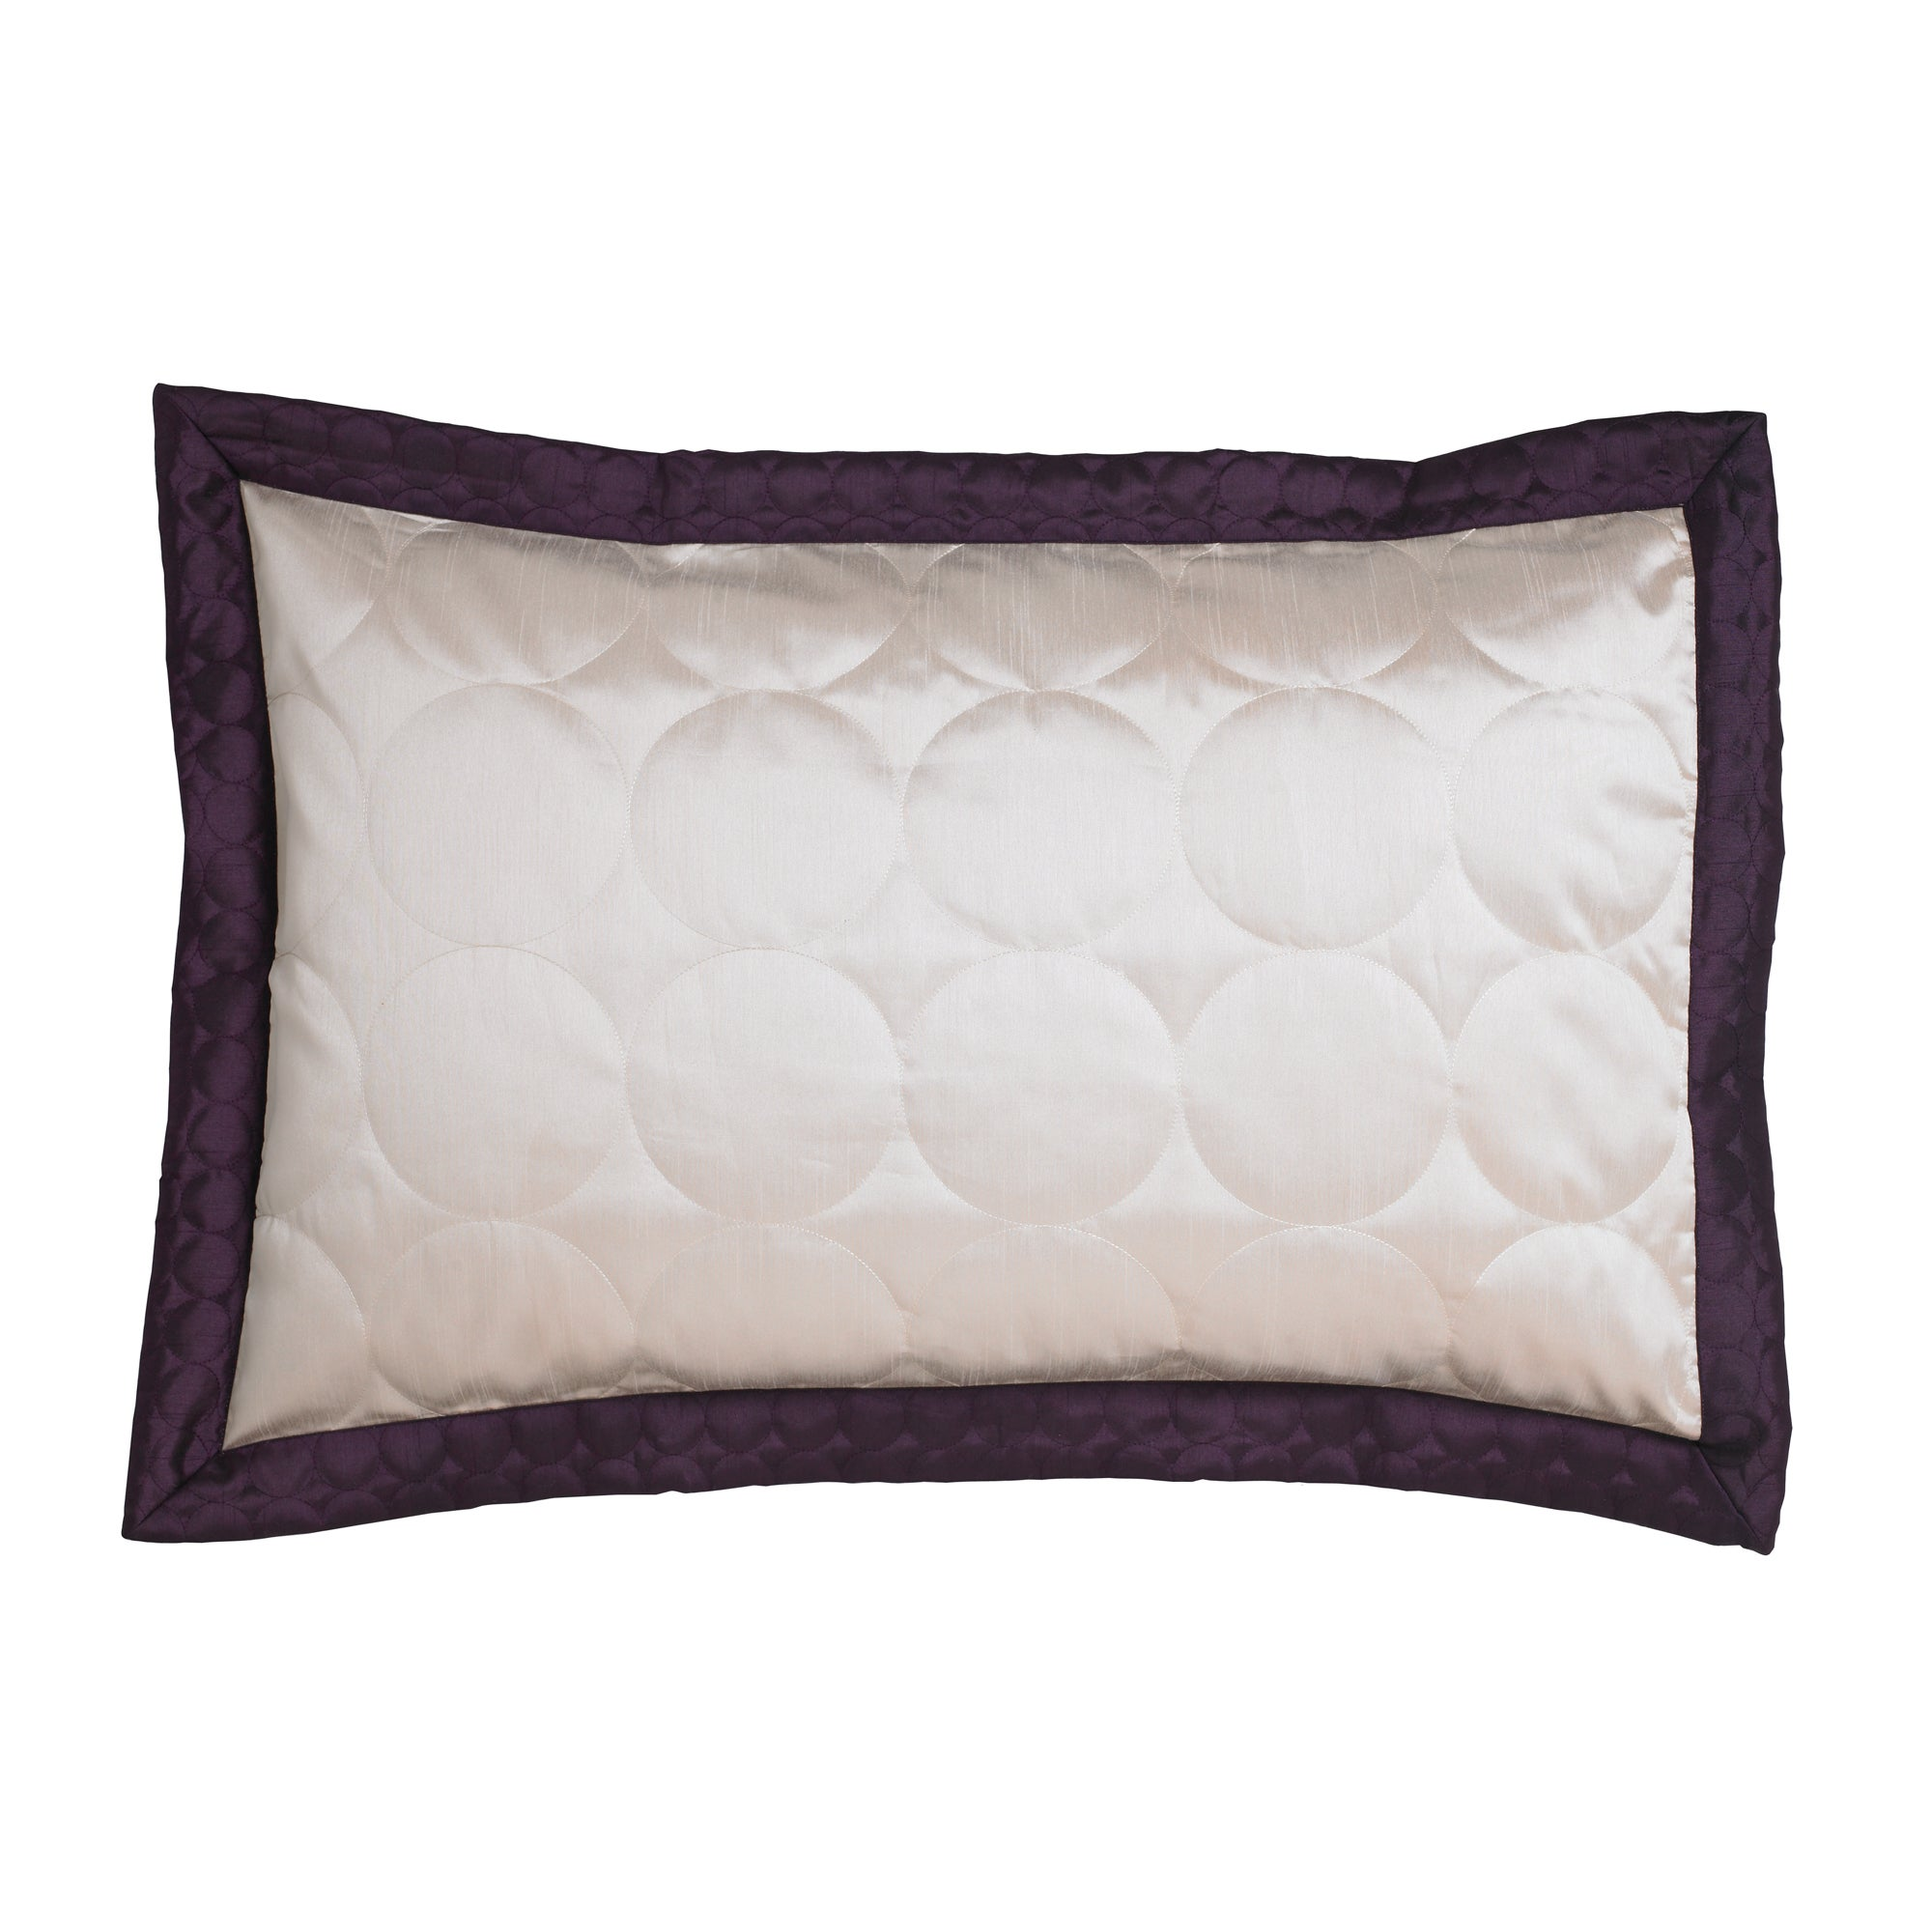 Plum Circles Collection Oxford Pillowcase